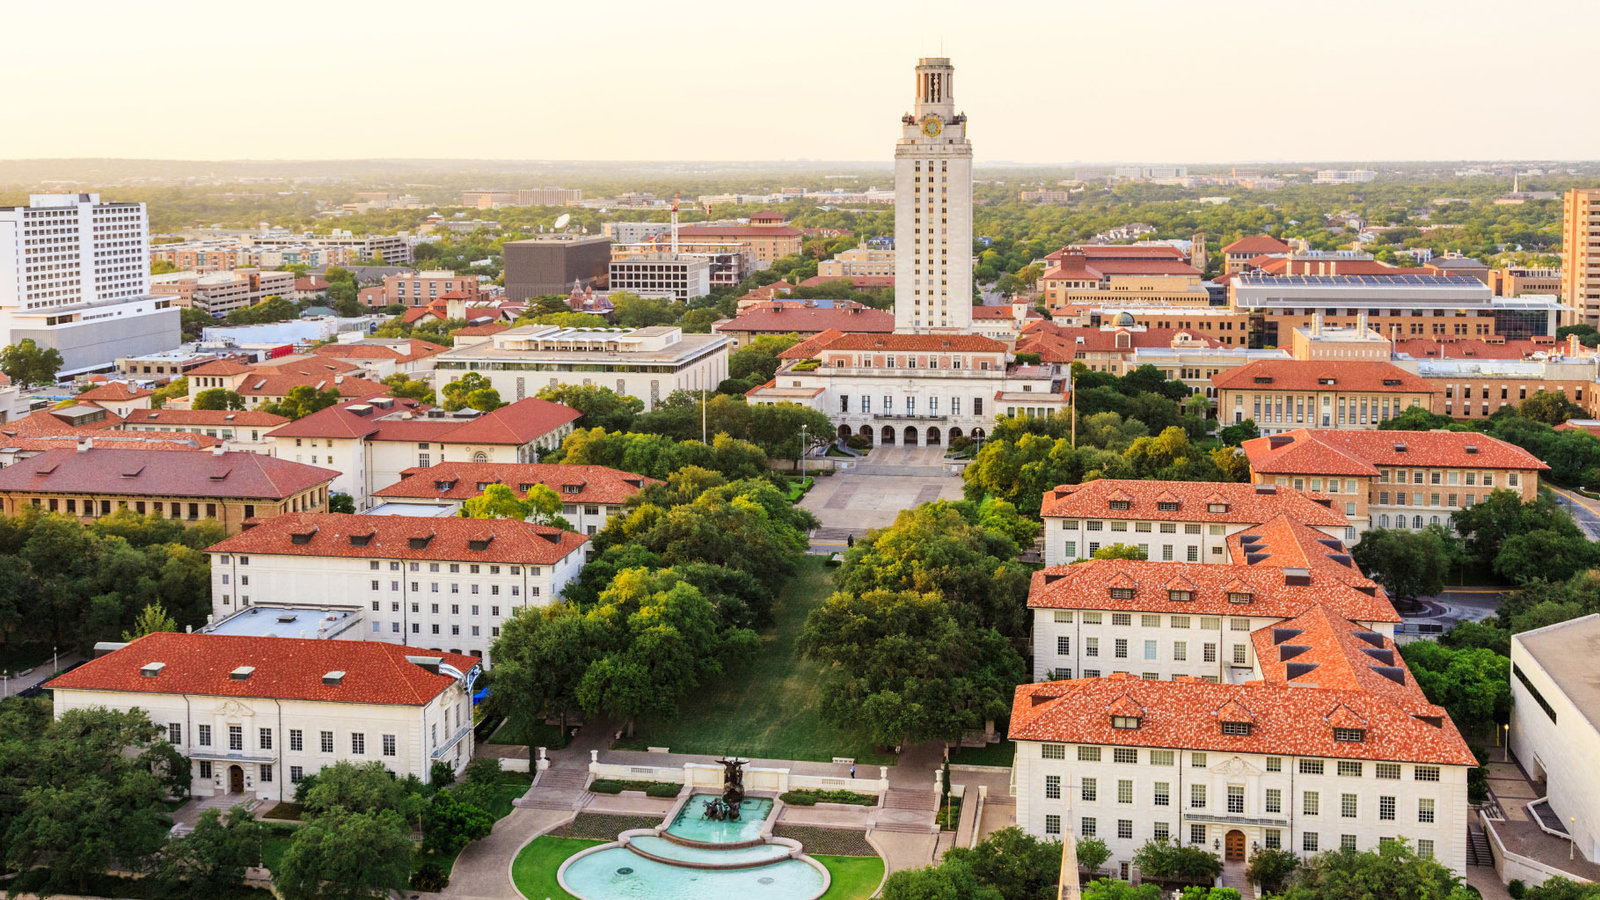 The University of Texas at Austin - Architecture School in Texas